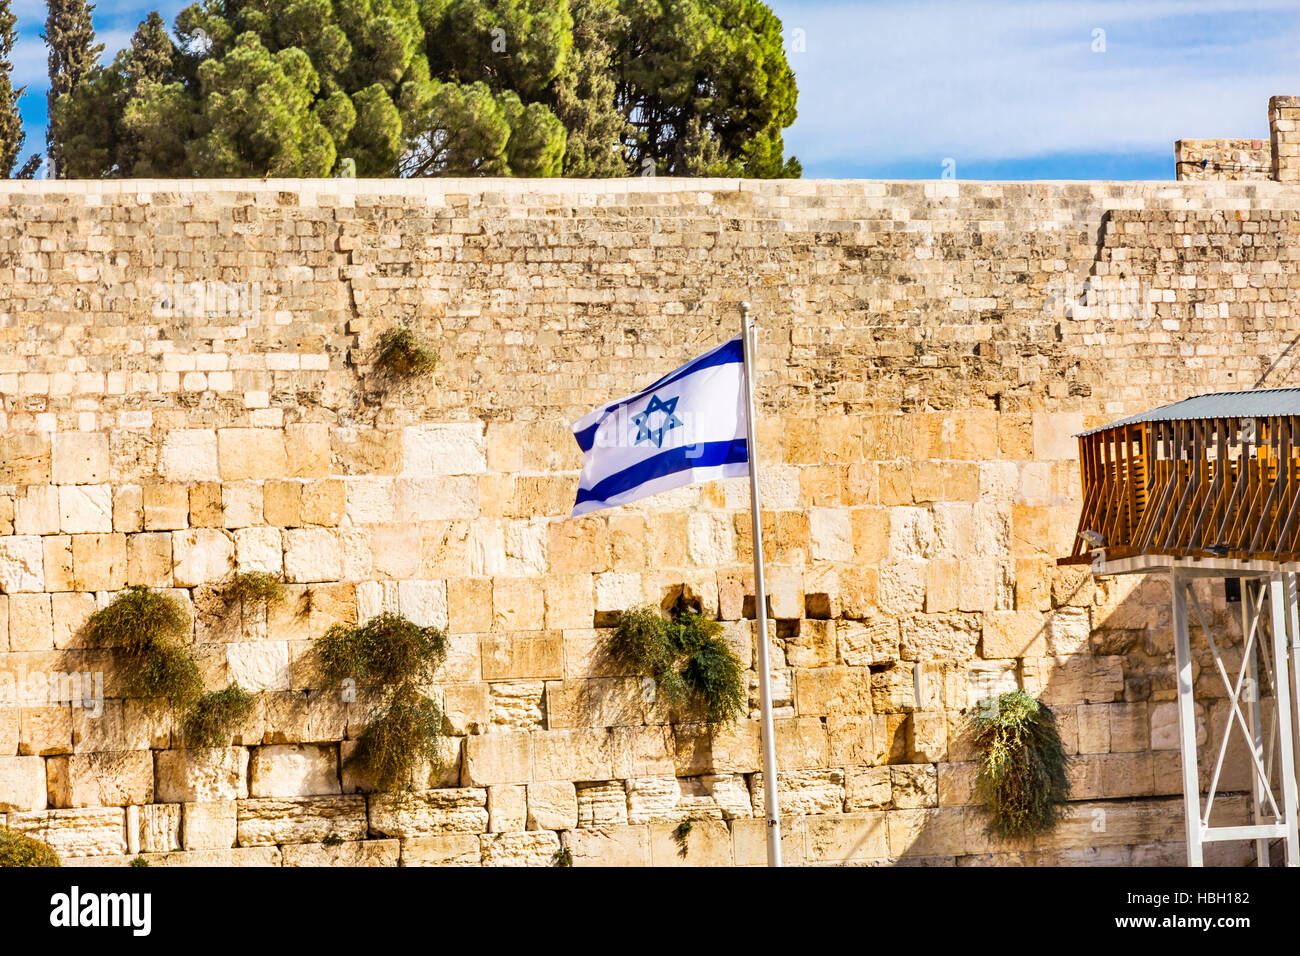 Israeli Culture Stock Photos & Israeli Culture Stock Images - Alamy